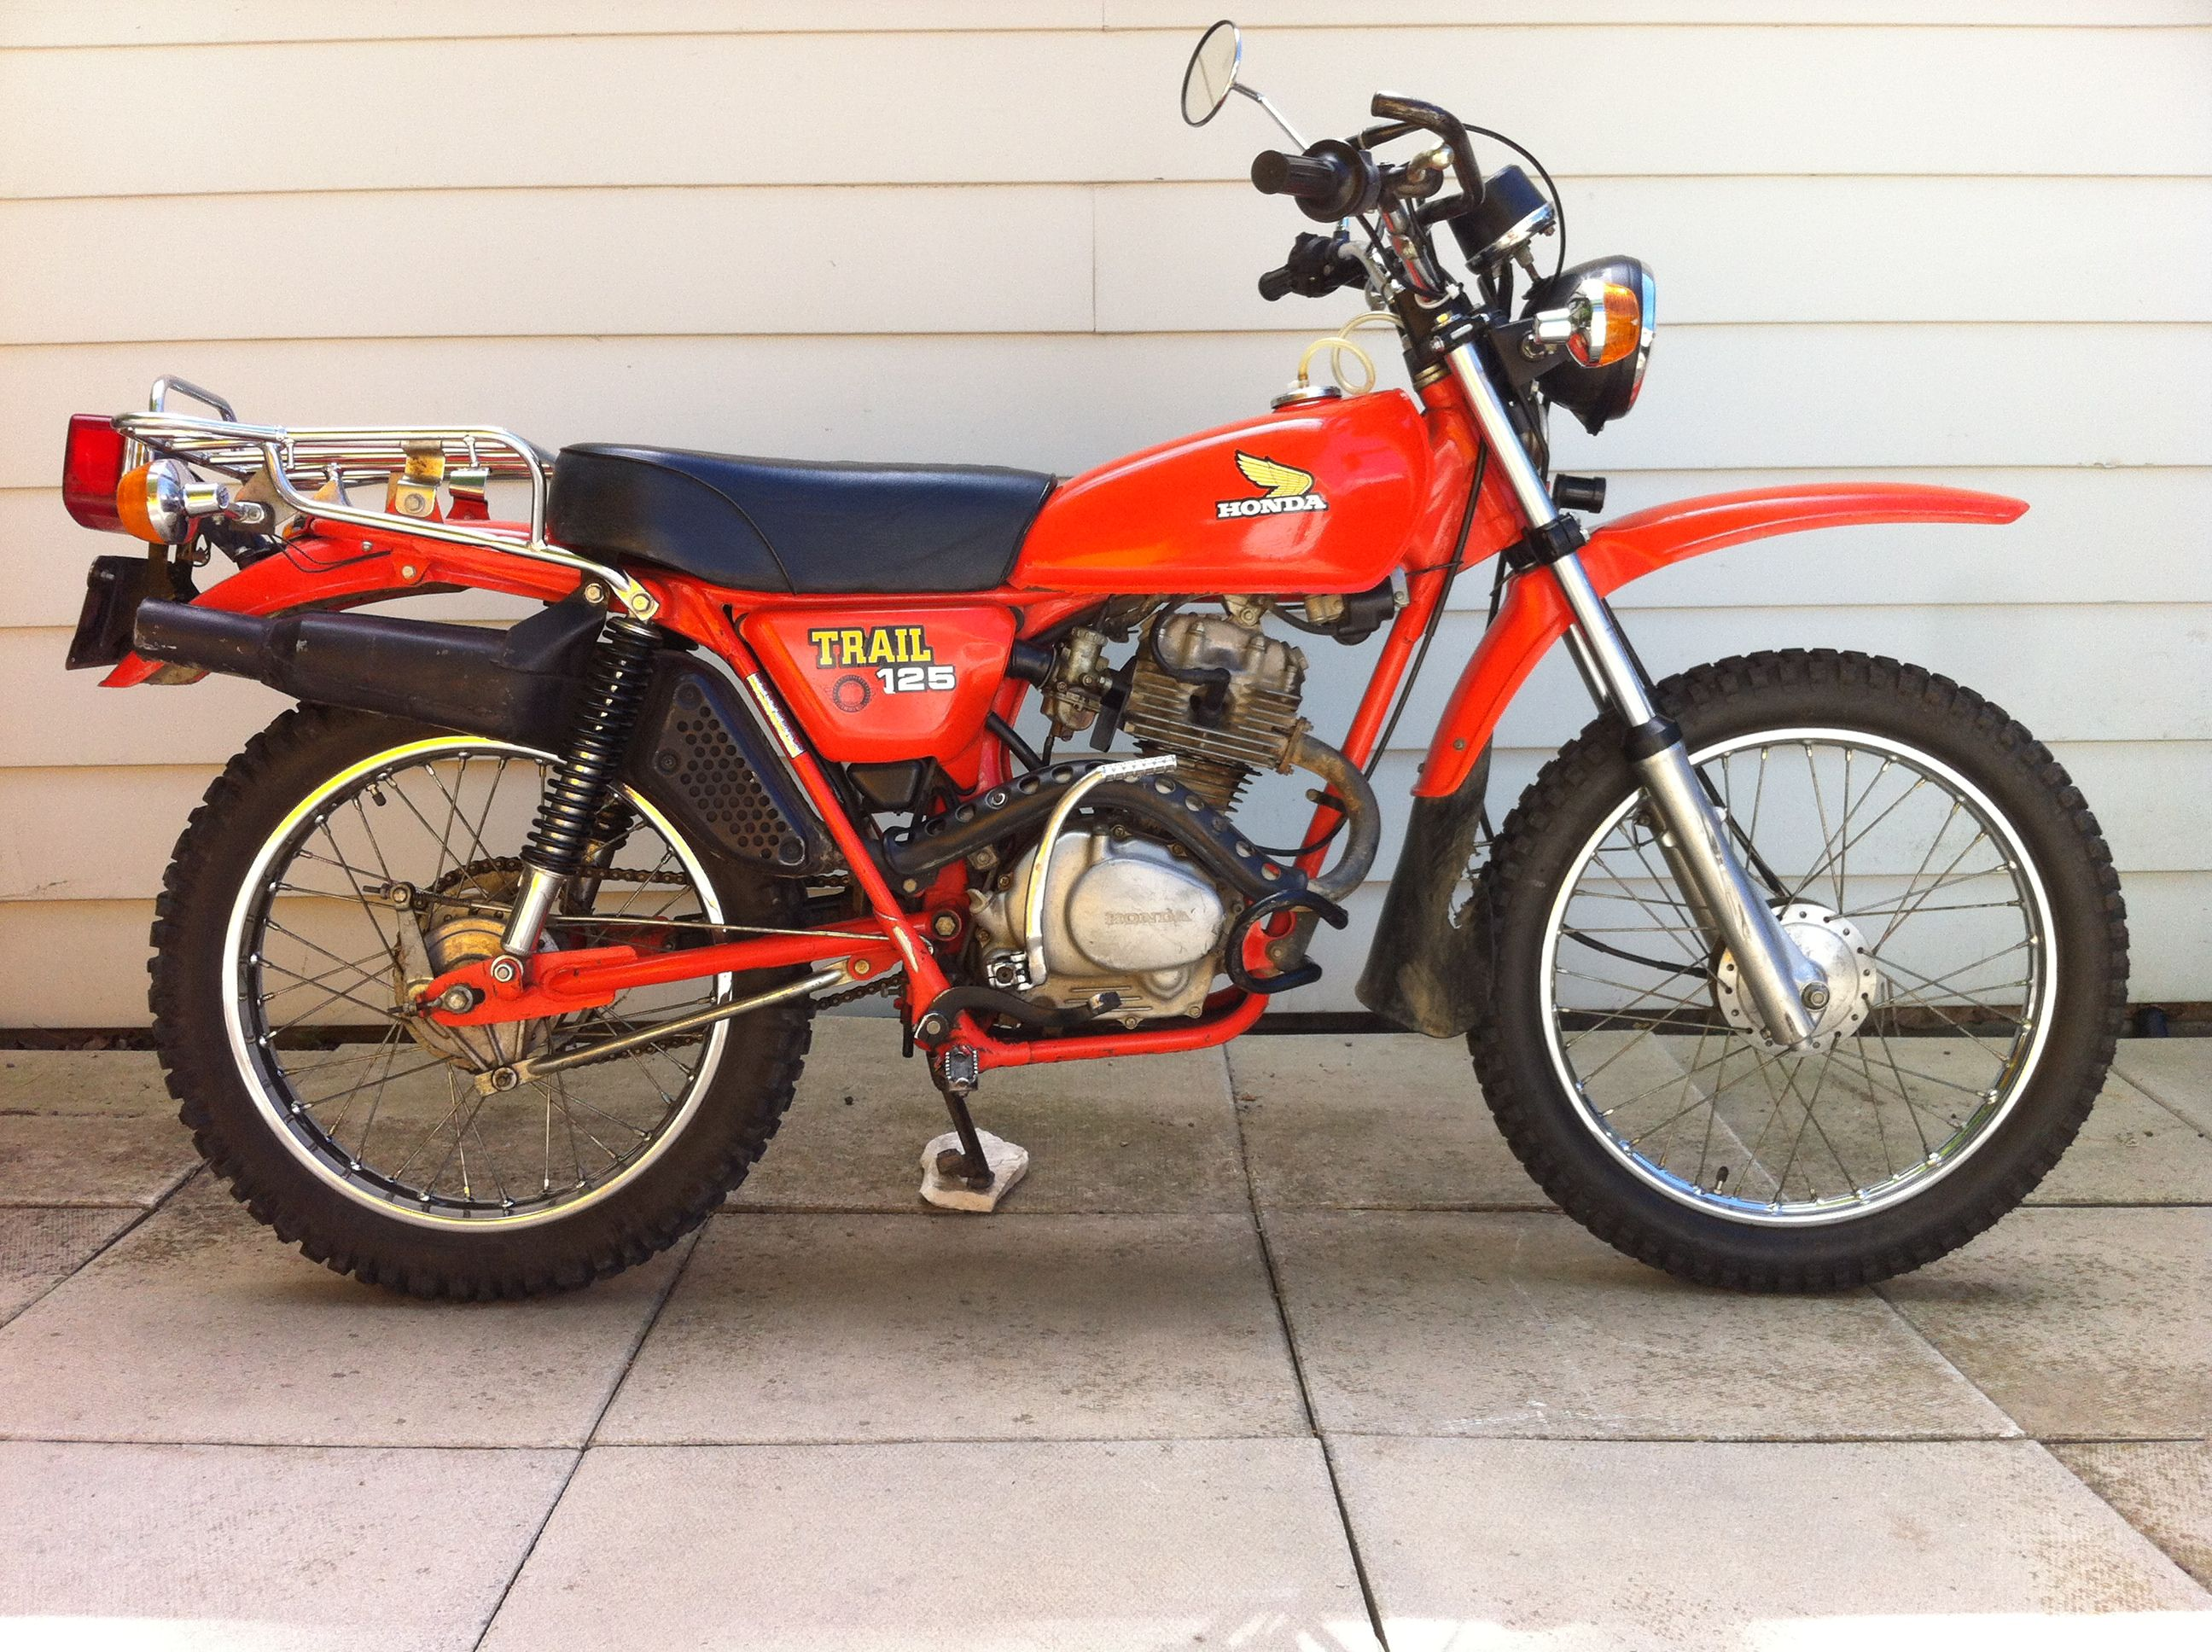 1977 Honda Ct125 Designed By Honda For Australian Sheep Farmers Sold In N America For Only One Ye Enduro Motorcycle Motorcycle Showroom Classic Motorcycles